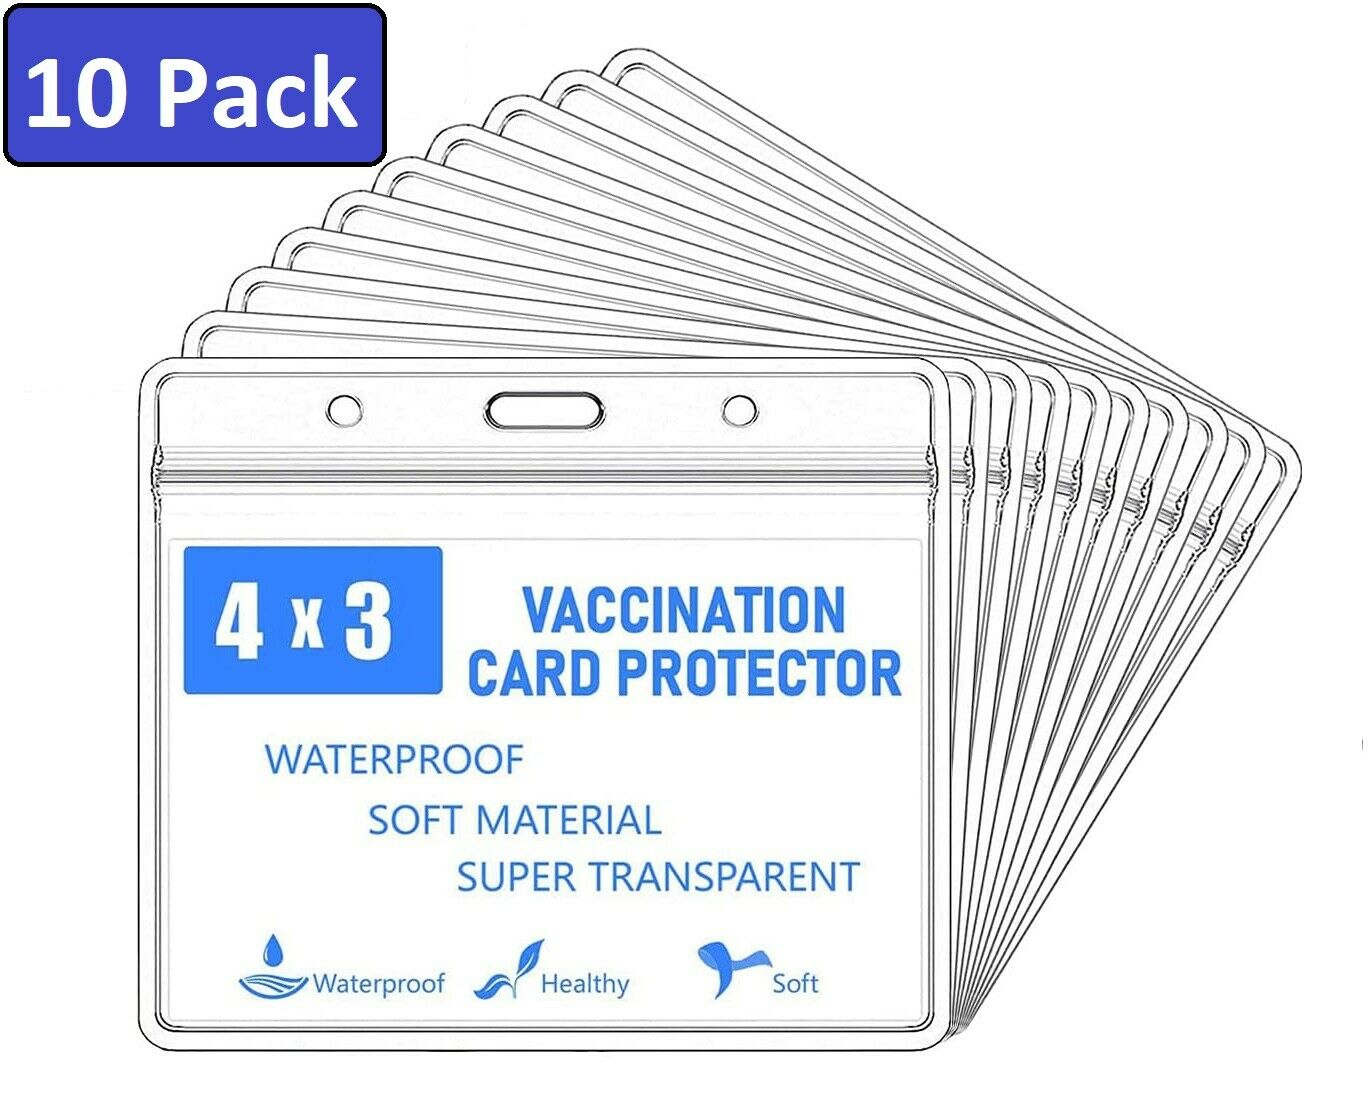 10 CDC Vaccination Record Card Protector 3